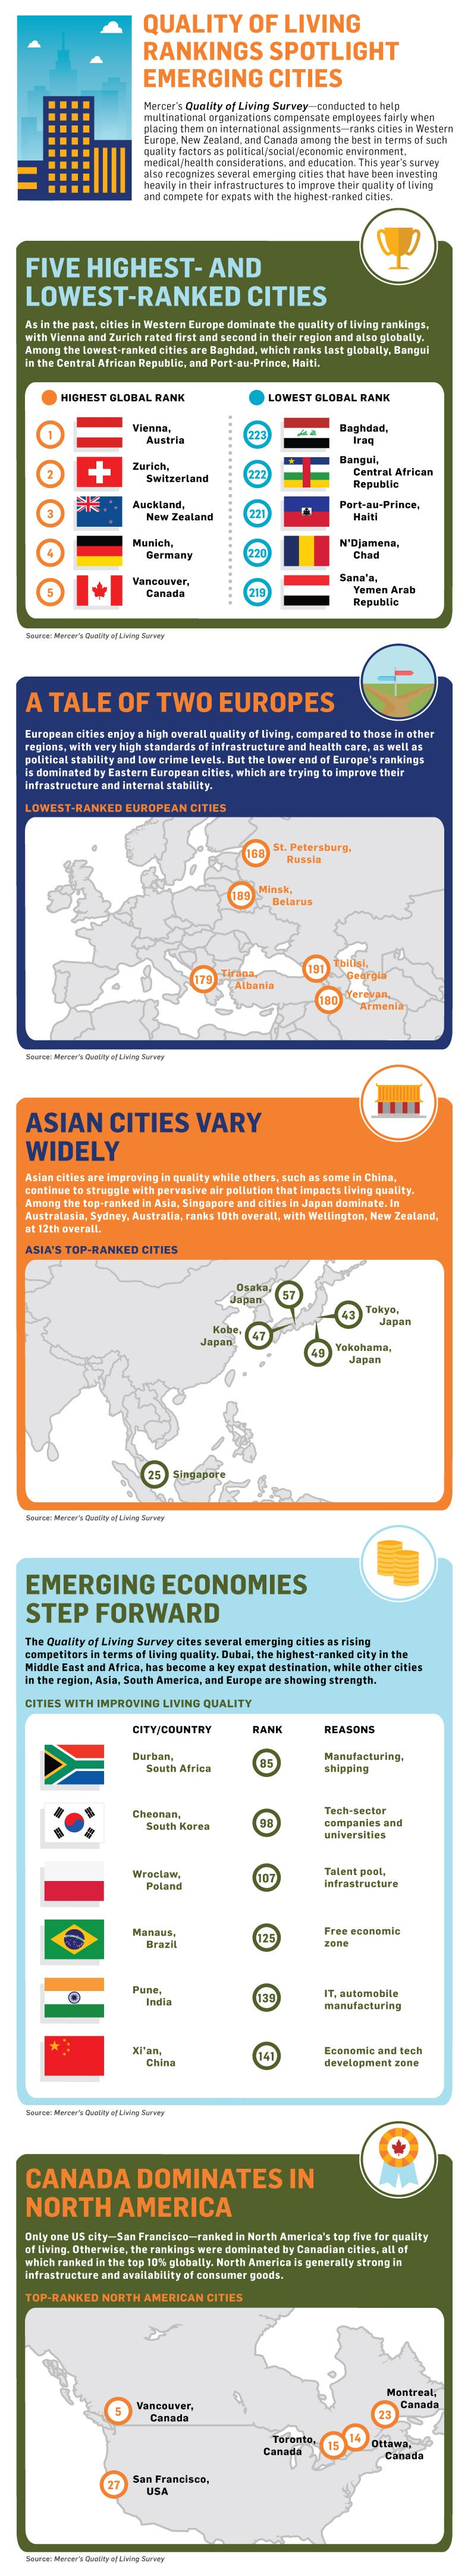 Quality of Life Around the World: The Best and Worst Cities (Infographic)